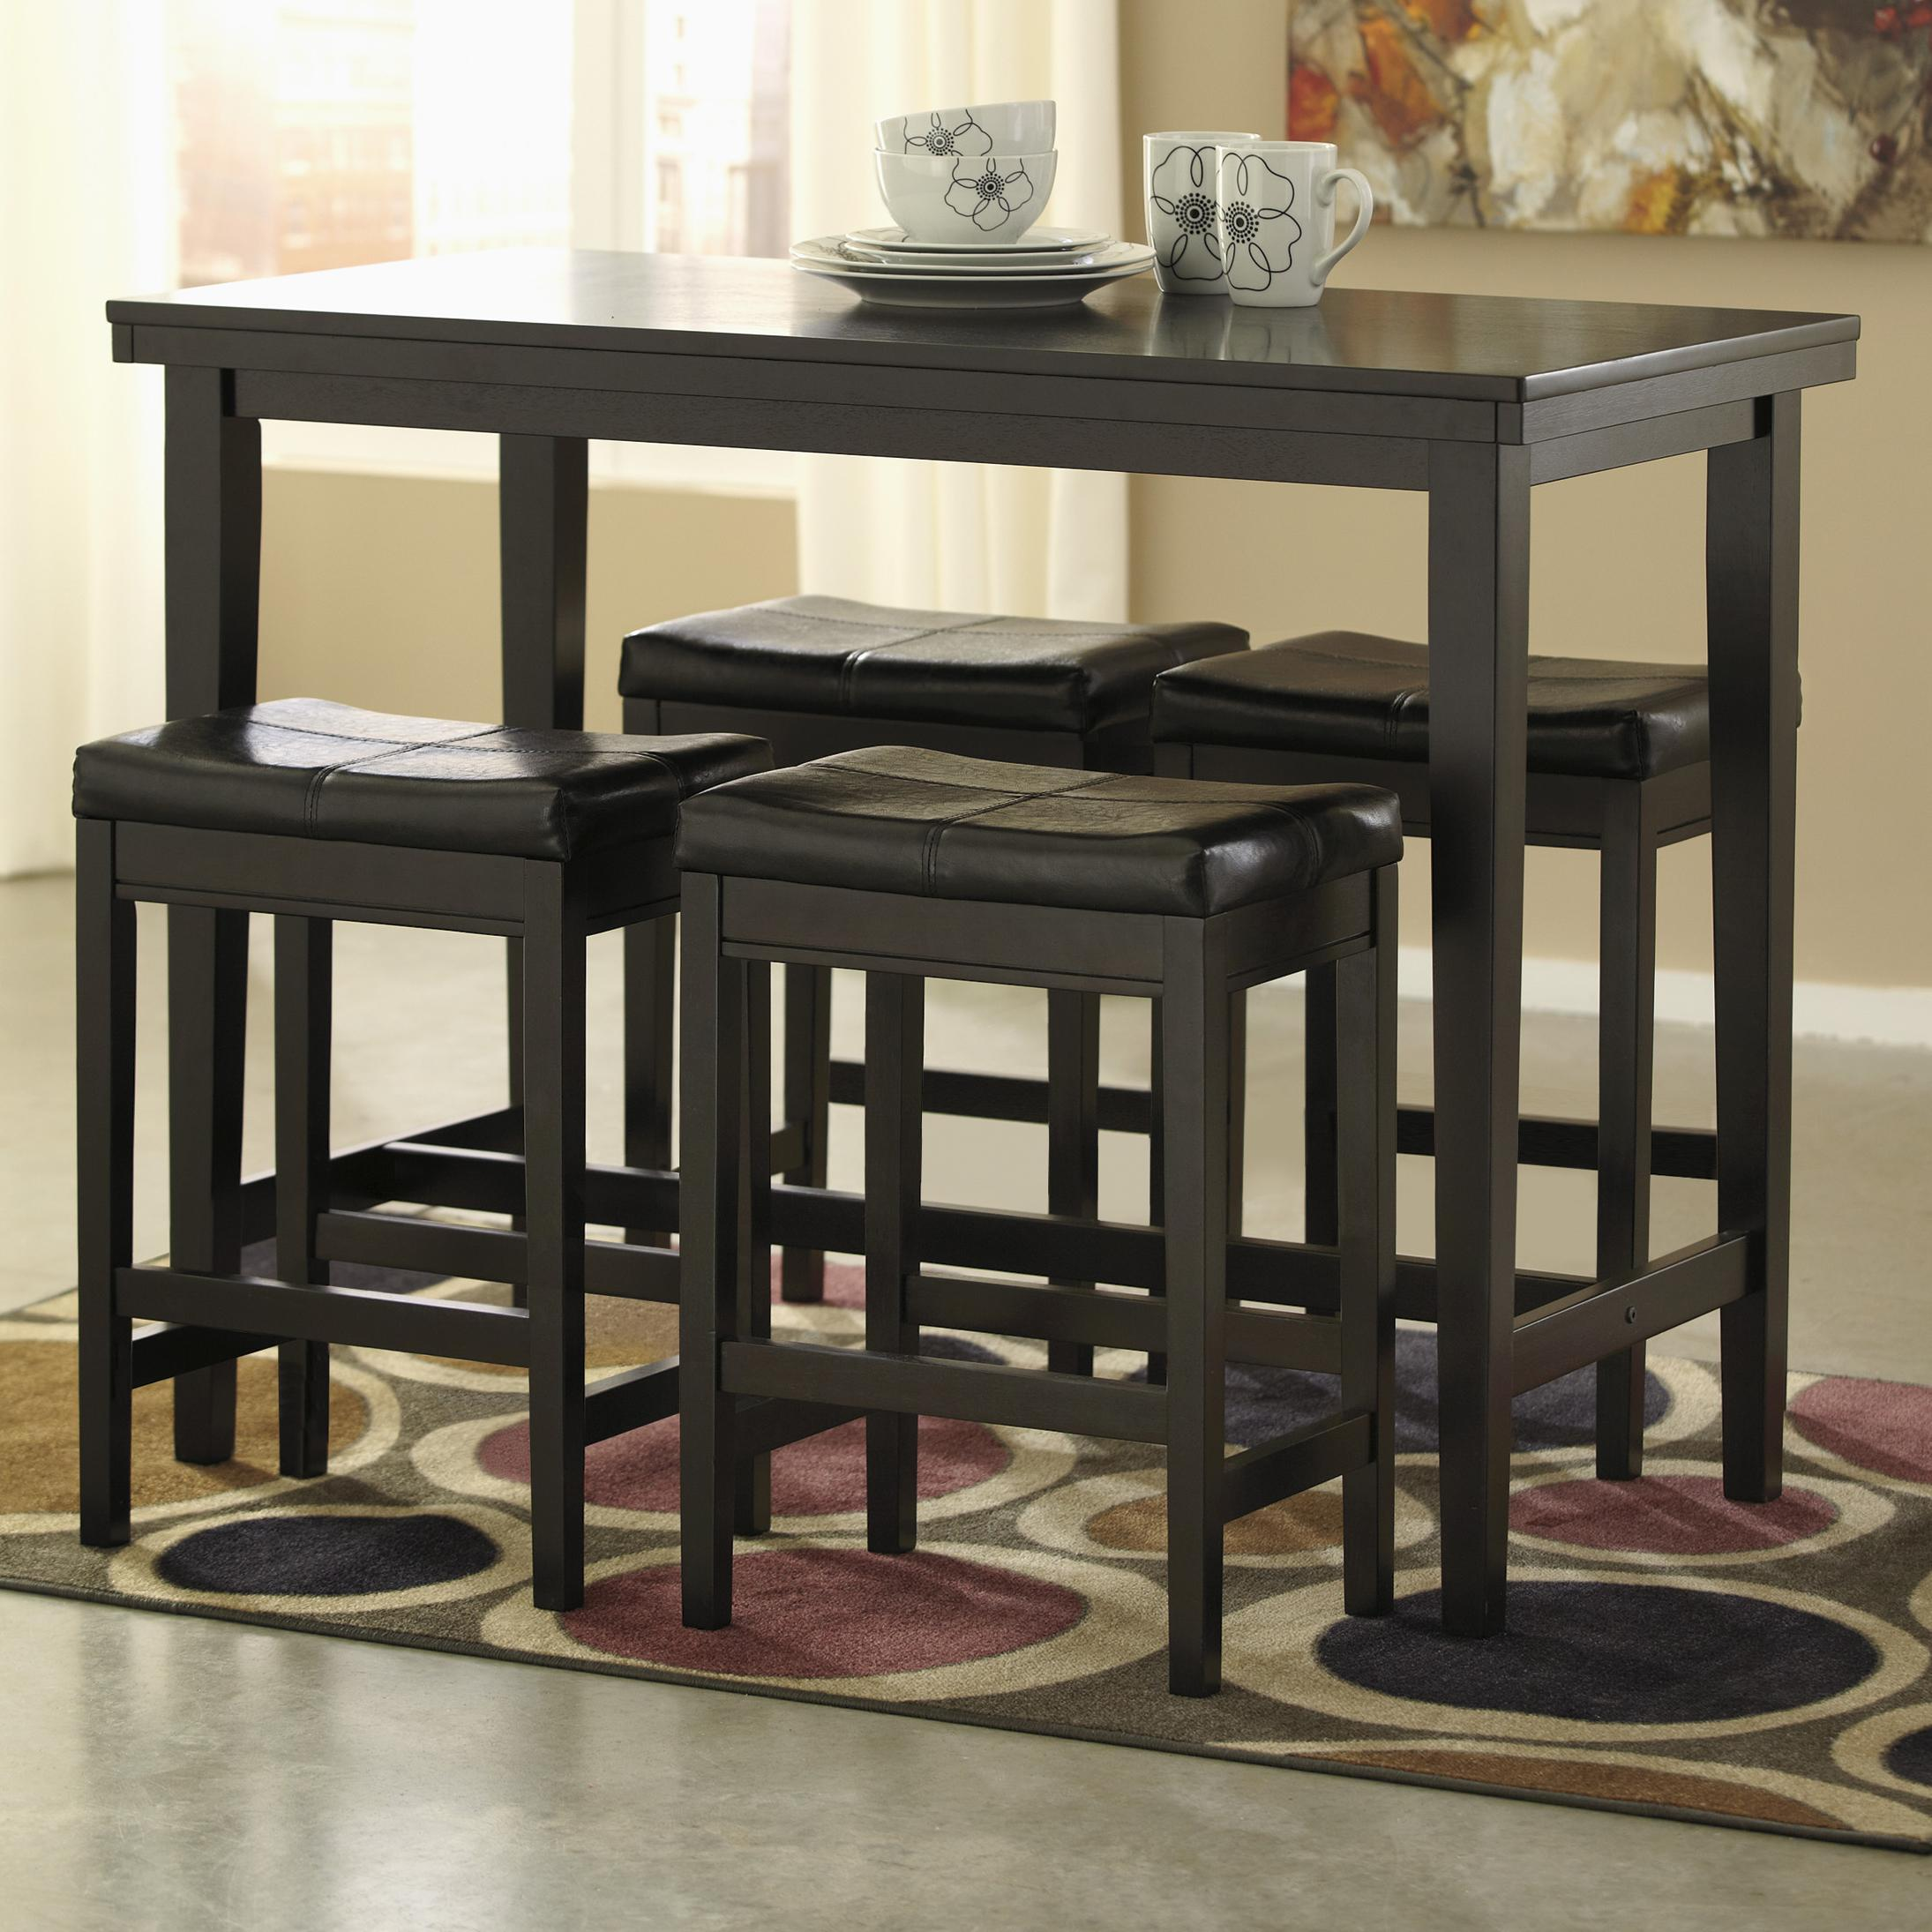 Kimonte 5-Piece Dining Set by Signature Design by Ashley at HomeWorld Furniture